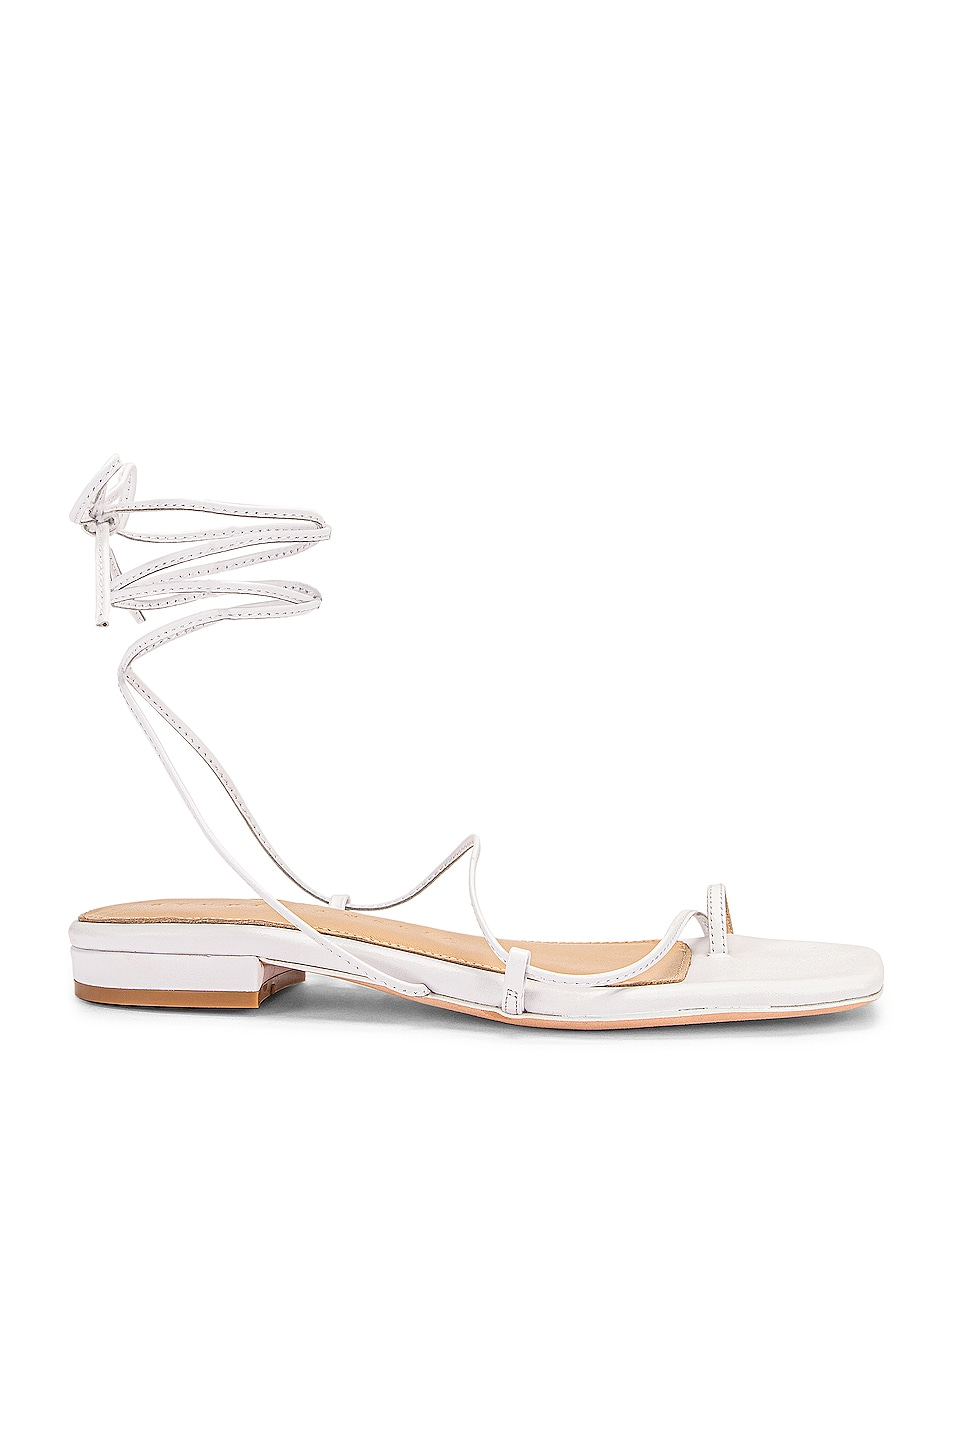 Image 1 of Studio Amelia 1.1 Sandal in White